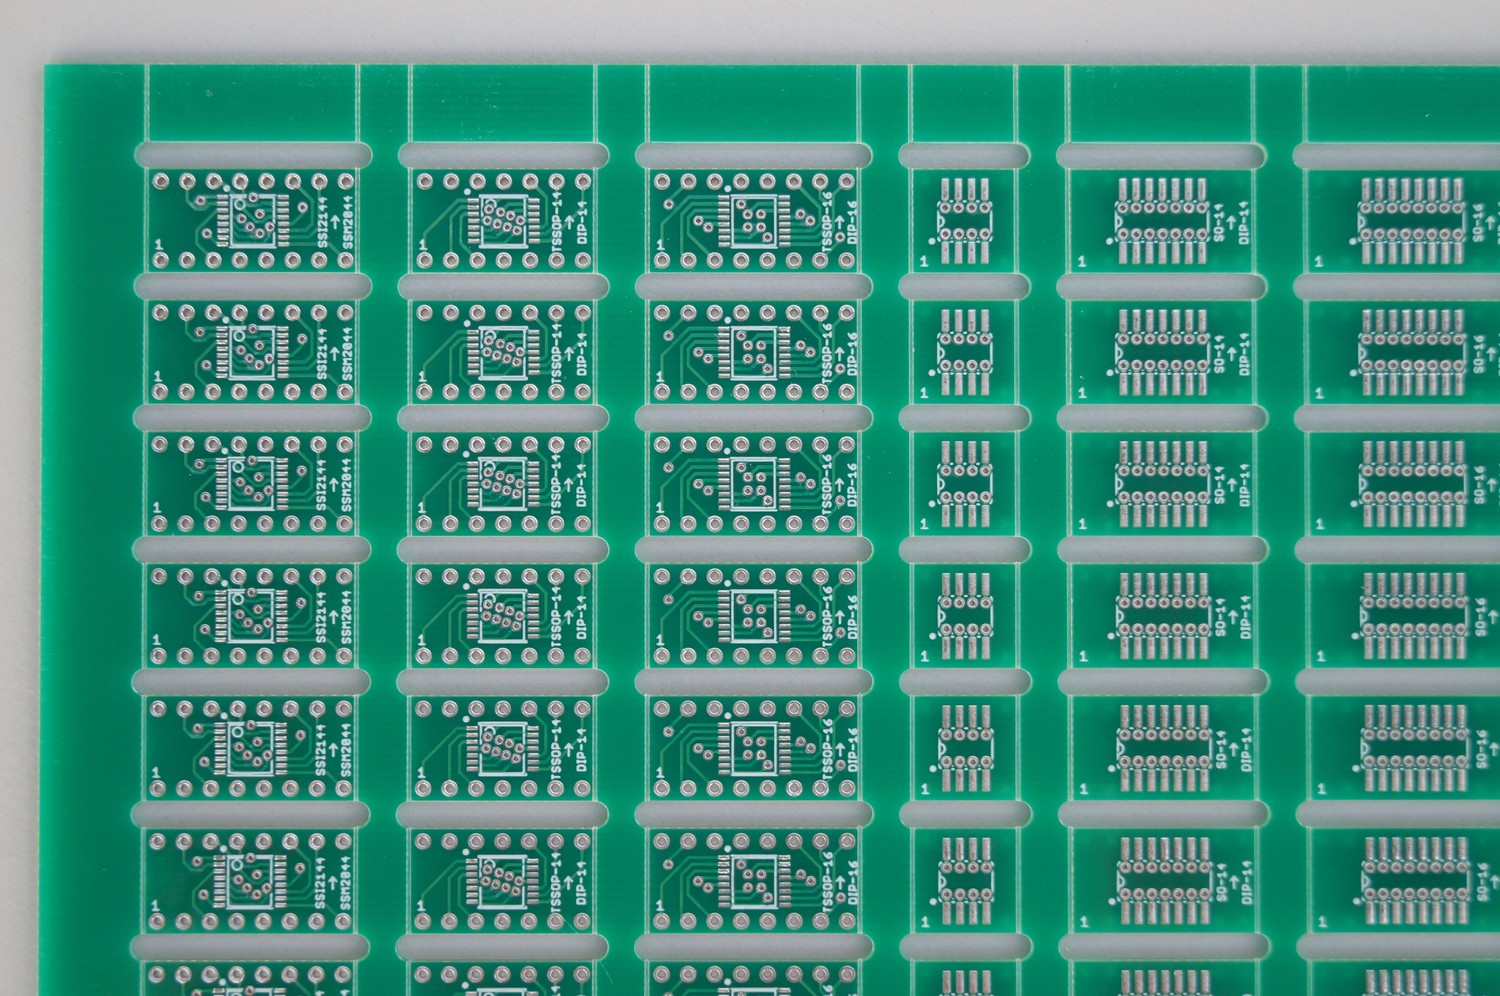 Panelized Adapter Pcbs Smd To Dip Sip For Synthesizer Techs Diy Sot 23 Adapters Polysix Switch 03